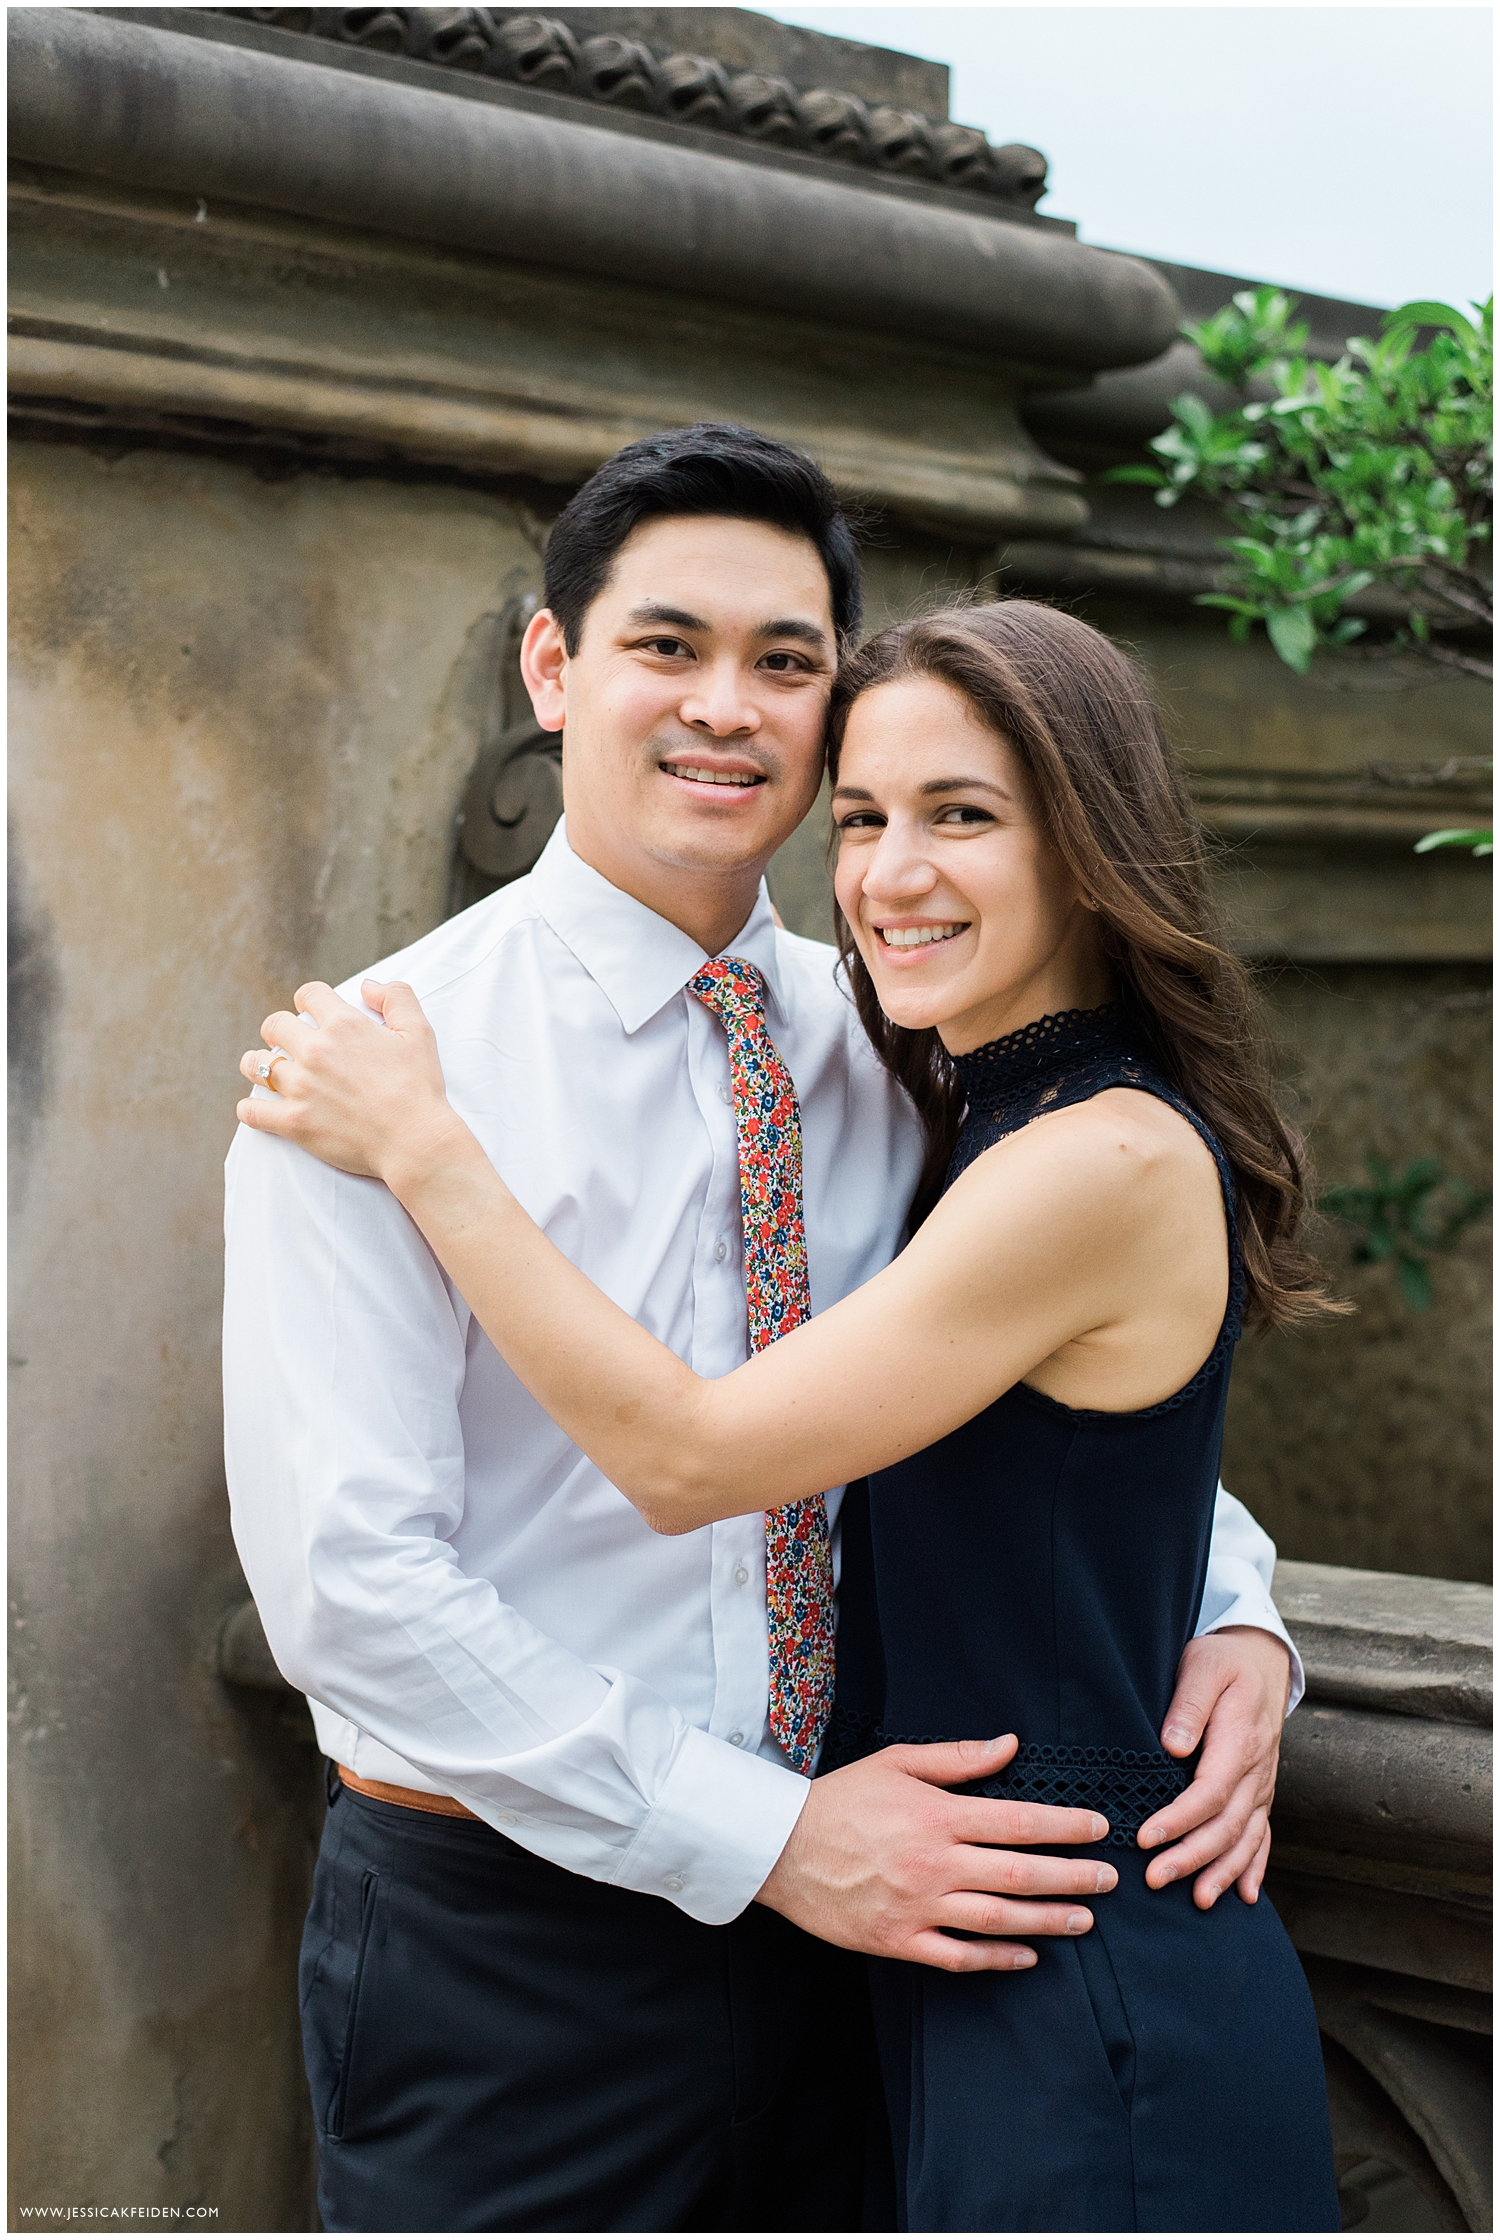 Jessica K Feiden Photography_Central Park NYC Engagement Session_0011.jpg